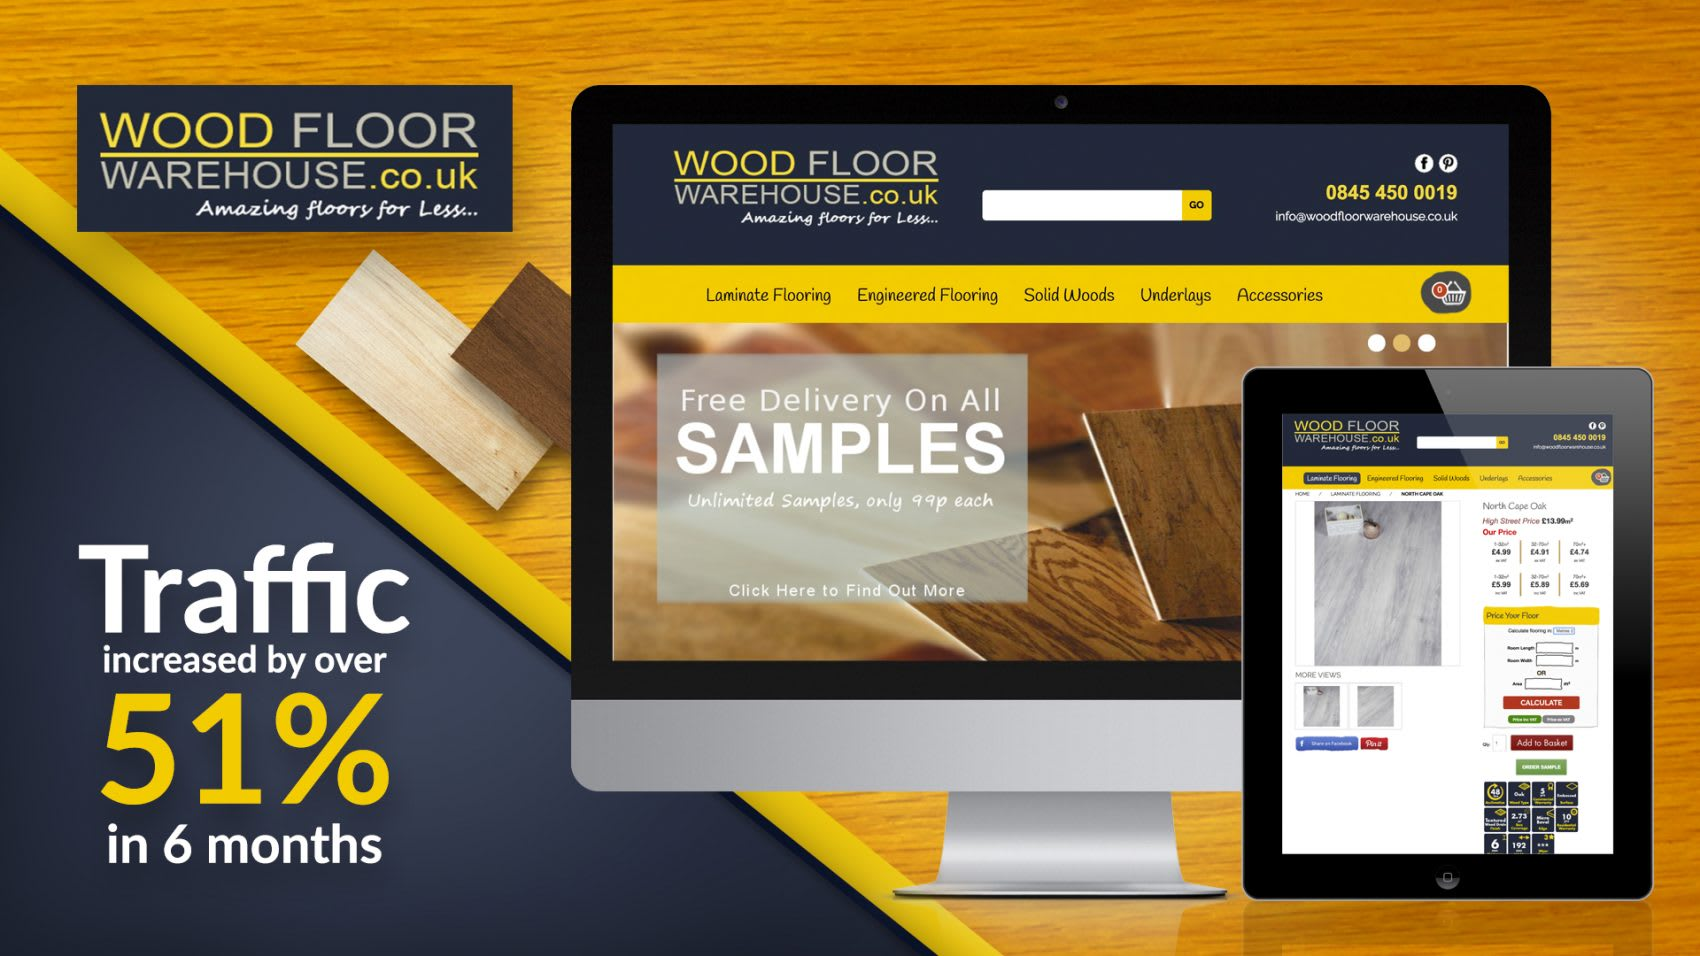 woodfloor warehouse seo results